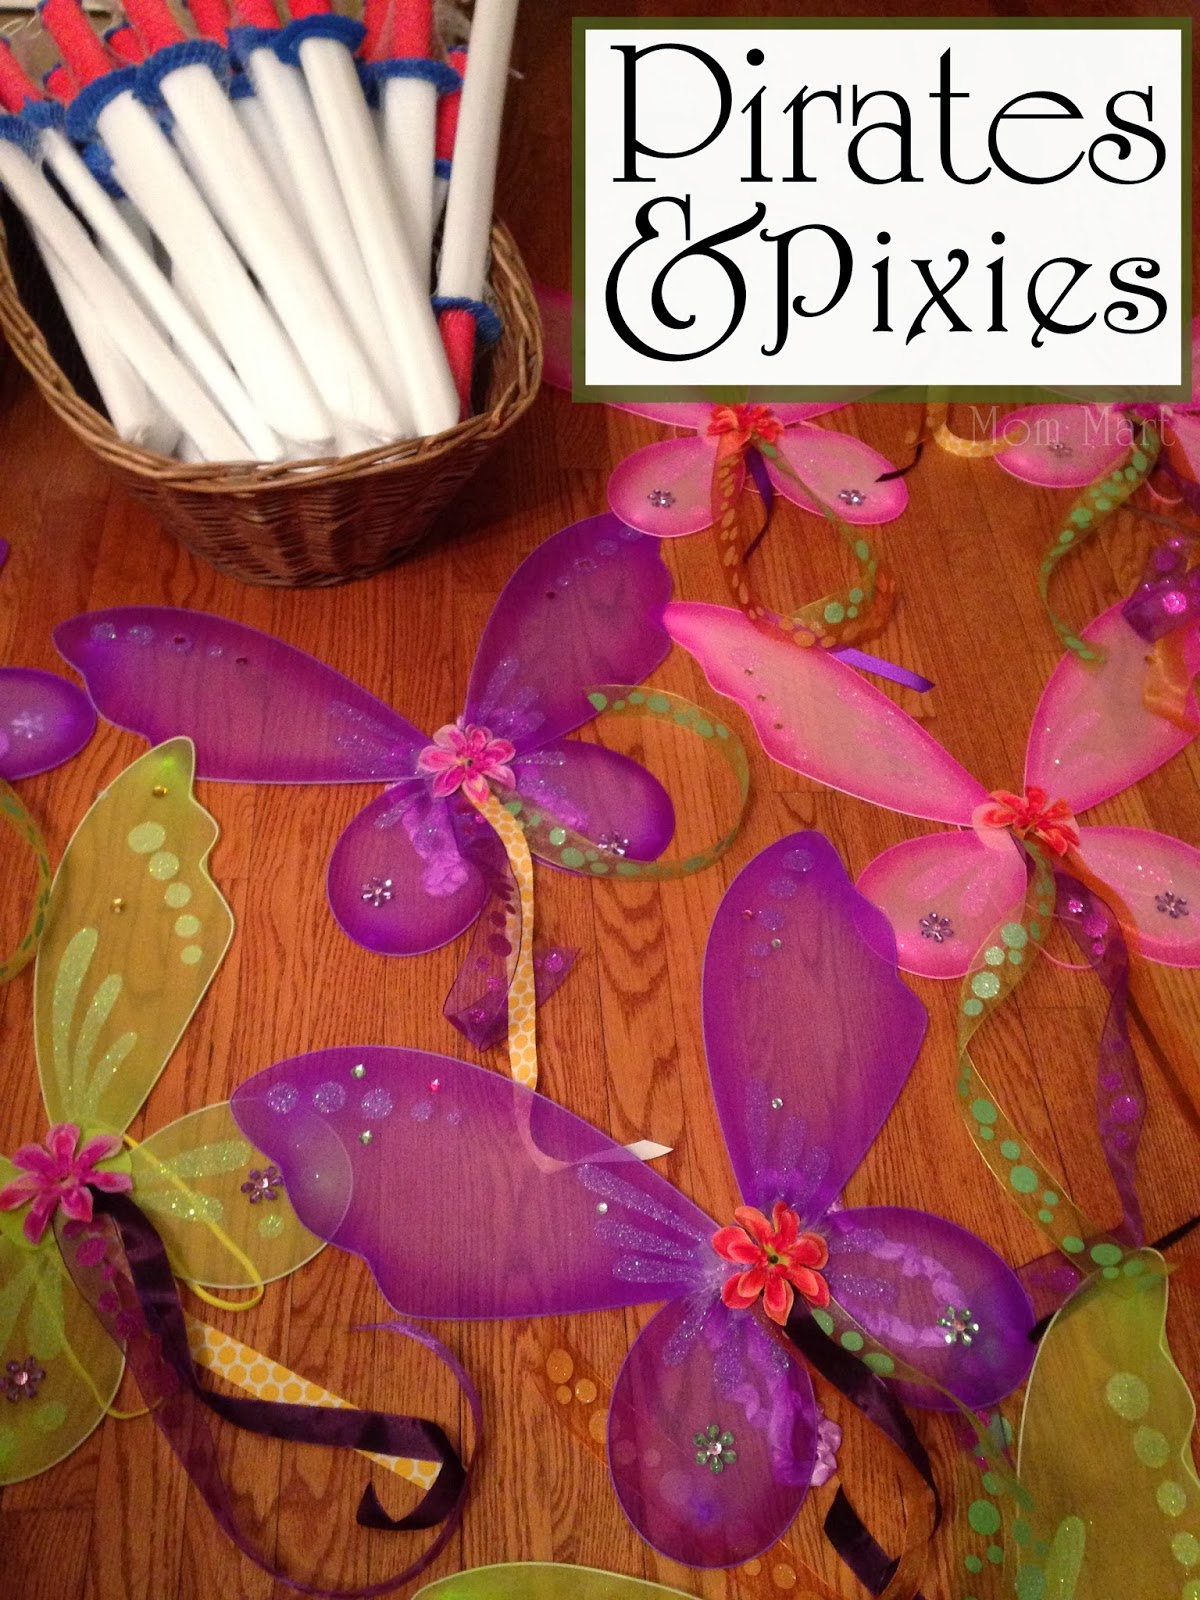 Pirates and Pixies Birthday Party Theme #DisneySide #PirateBirthdayParty #PixieBirthdayParty #Twins